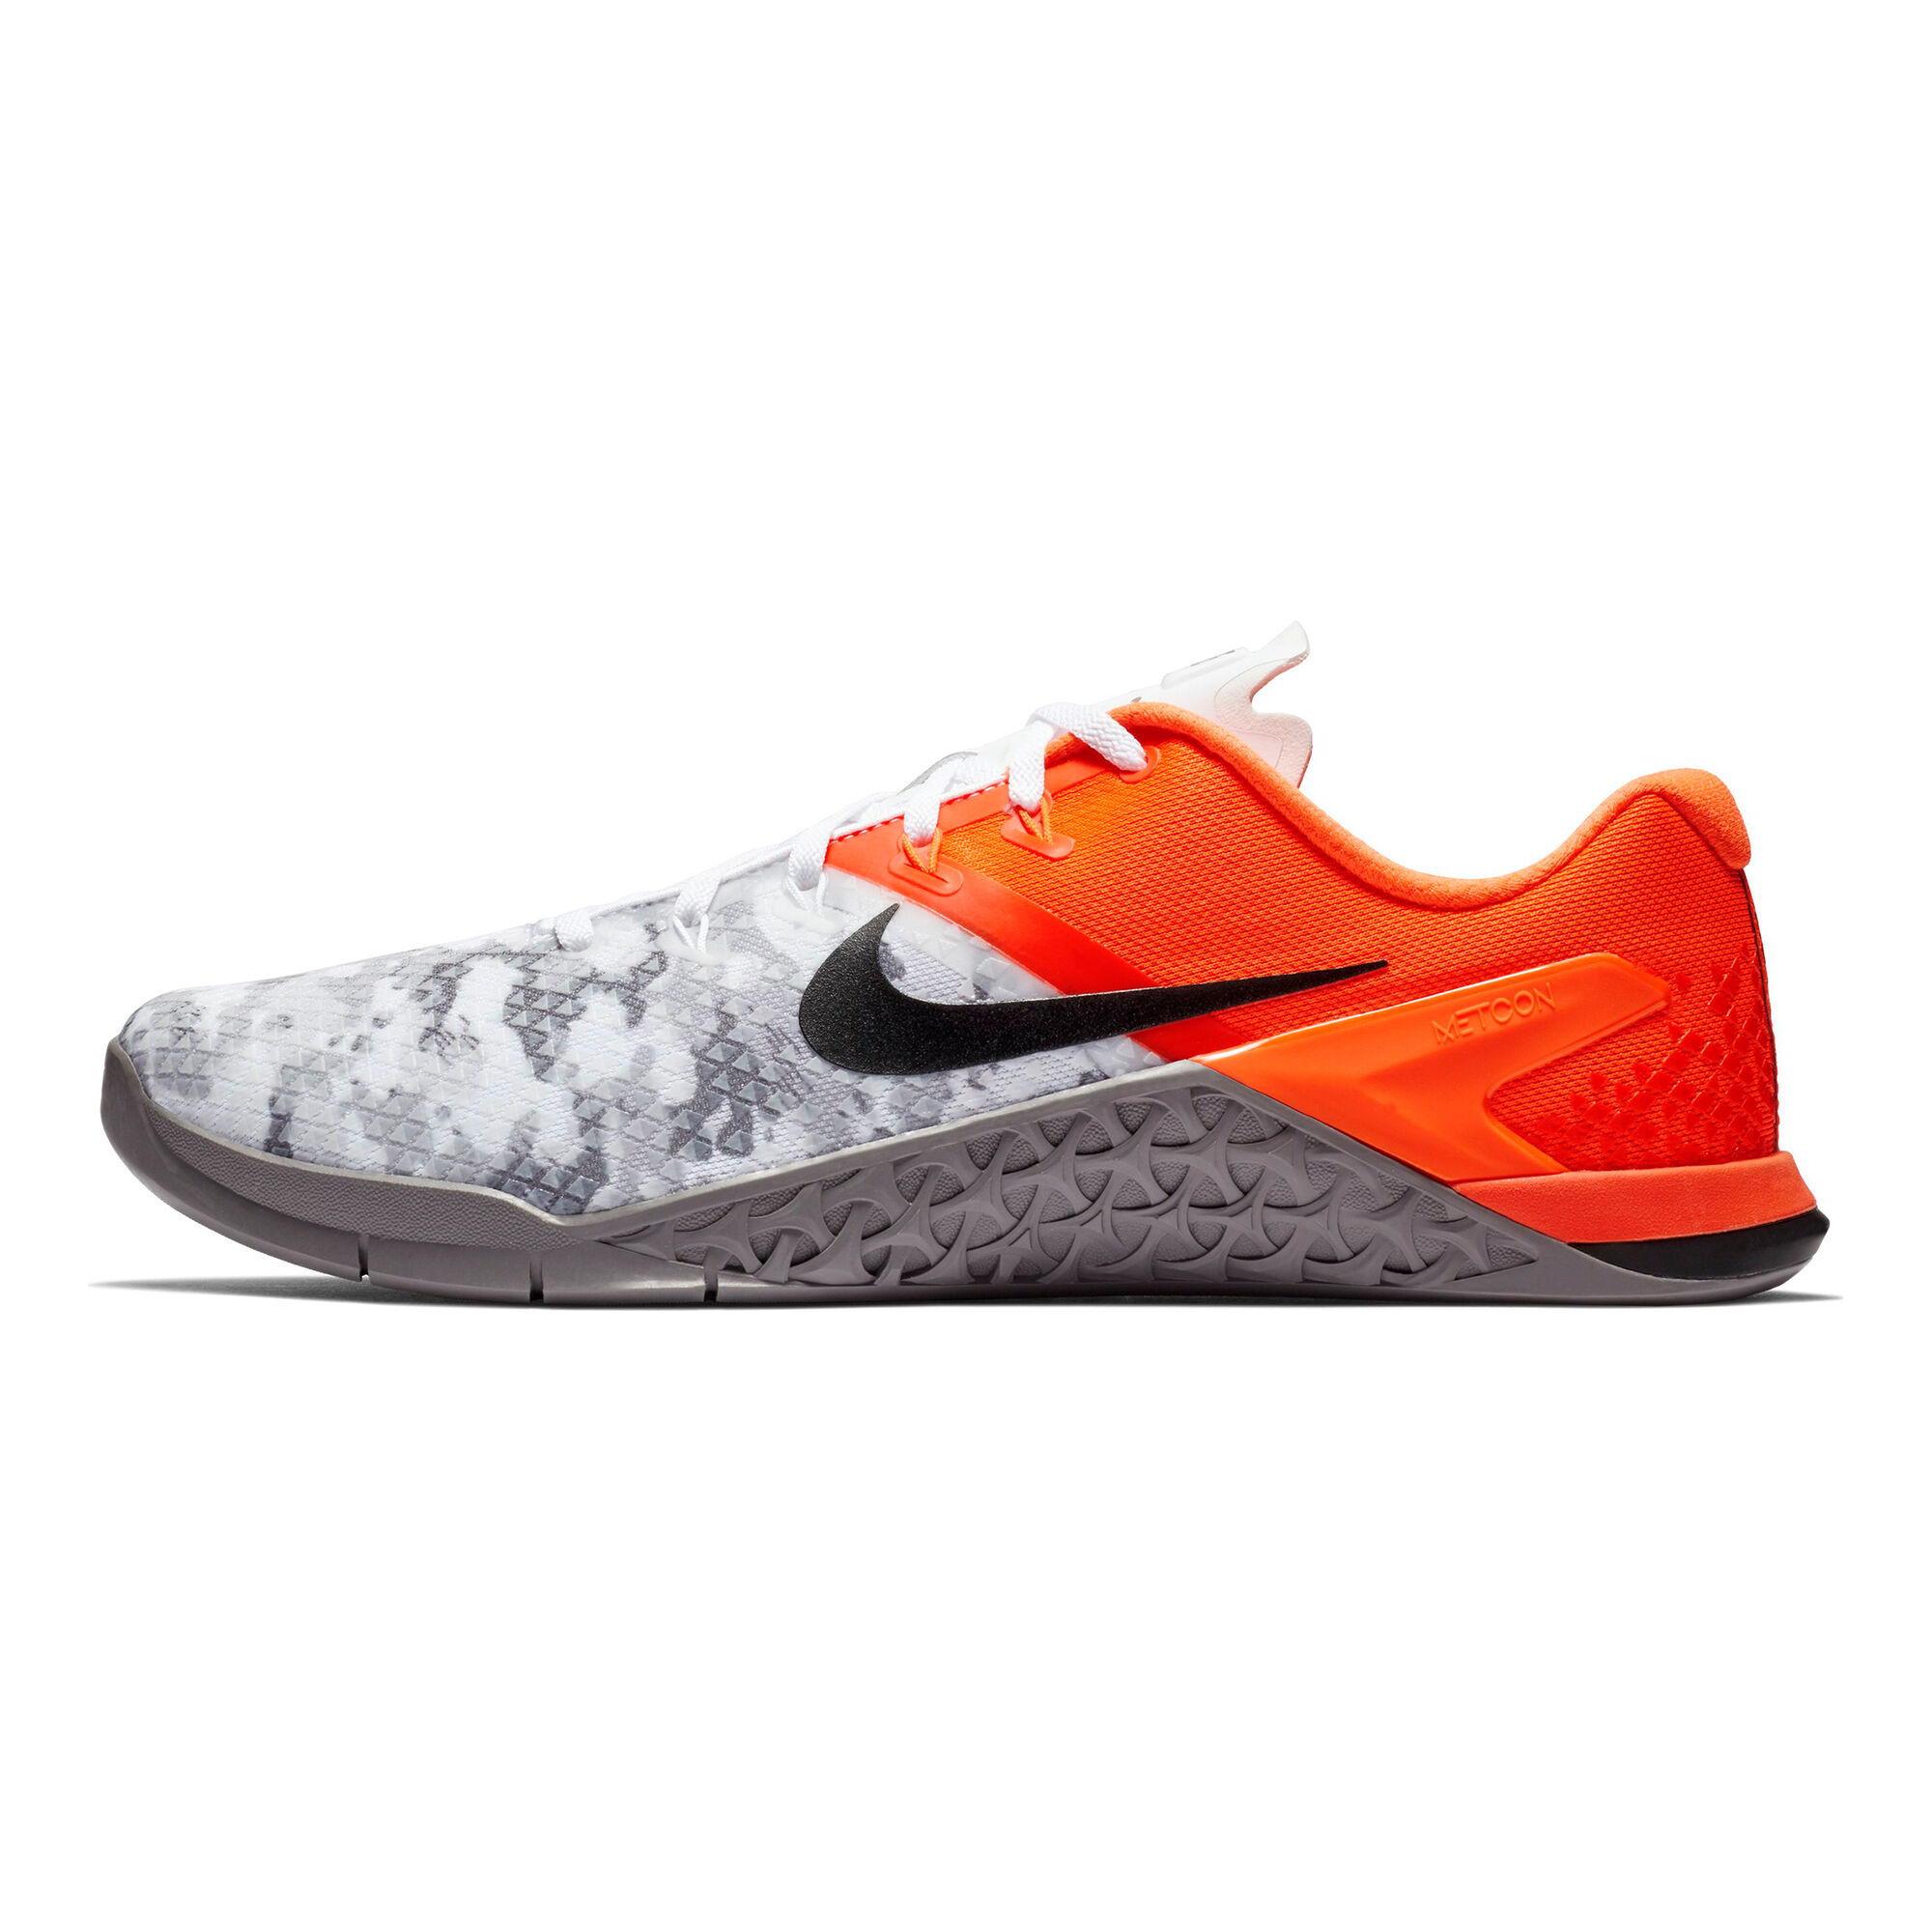 ca41935eb9a buy Nike Metcon 4 XD Fitness Shoe Men - Coral